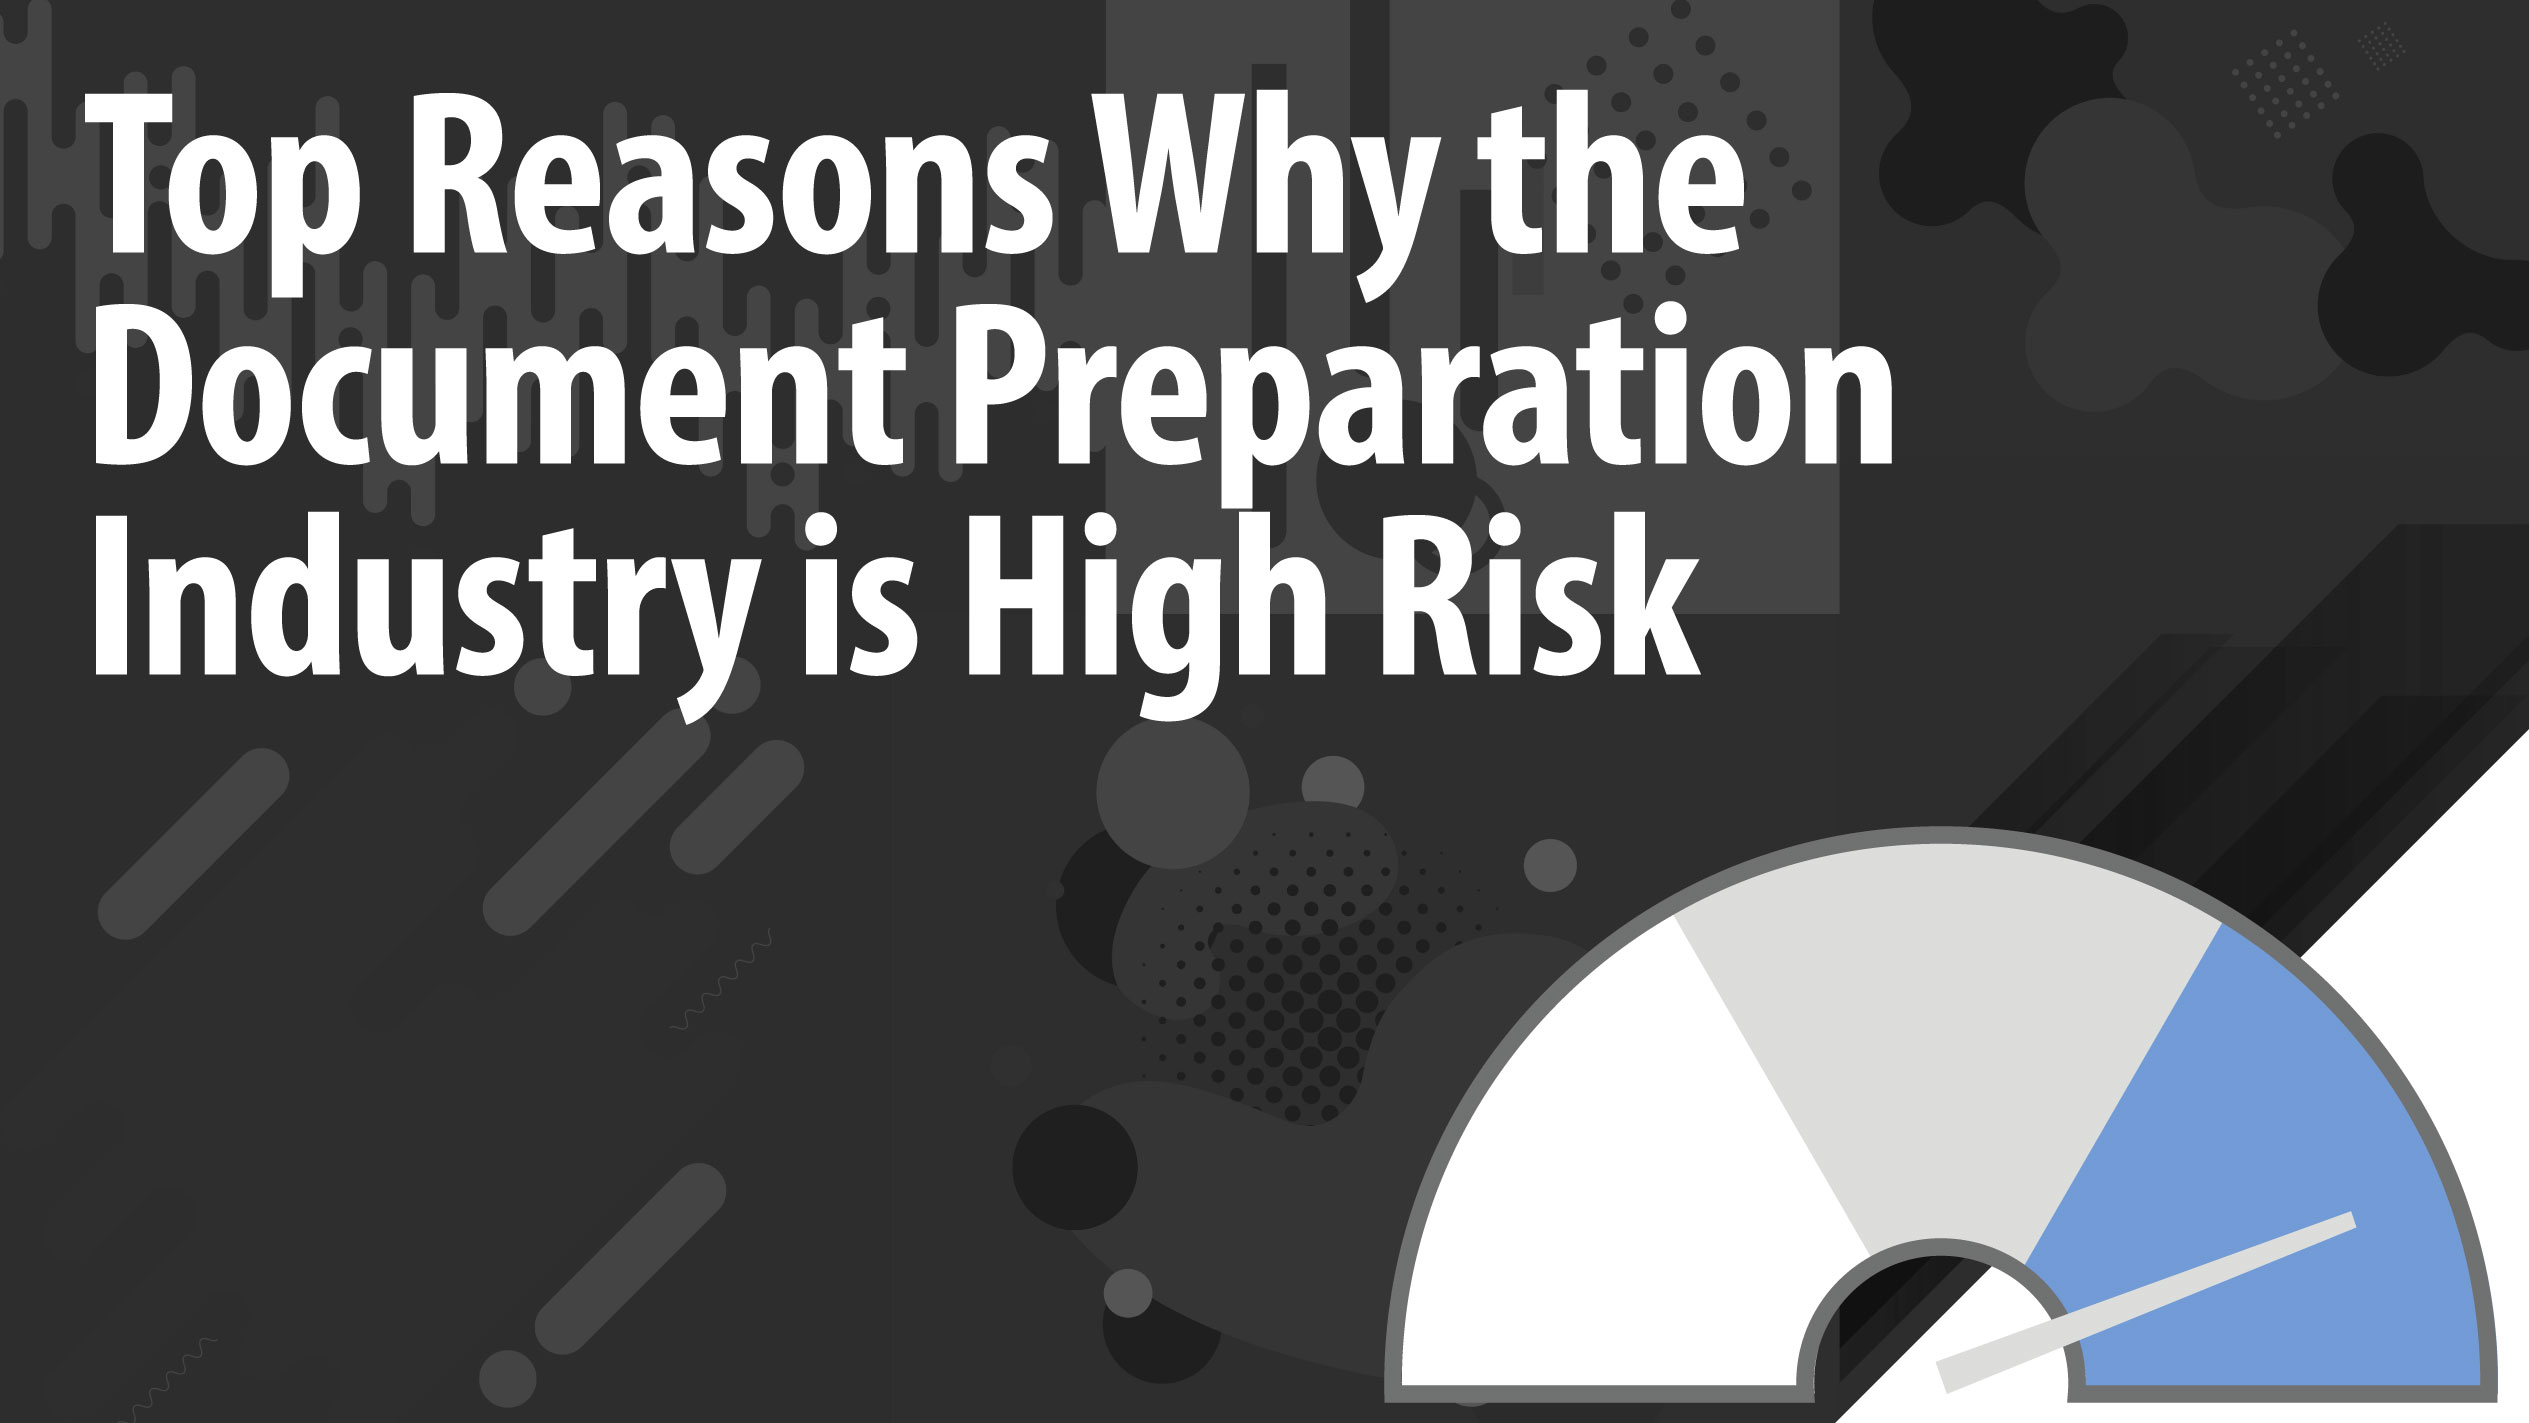 Top Reasons Why the Document Preparation Industry is High Risk